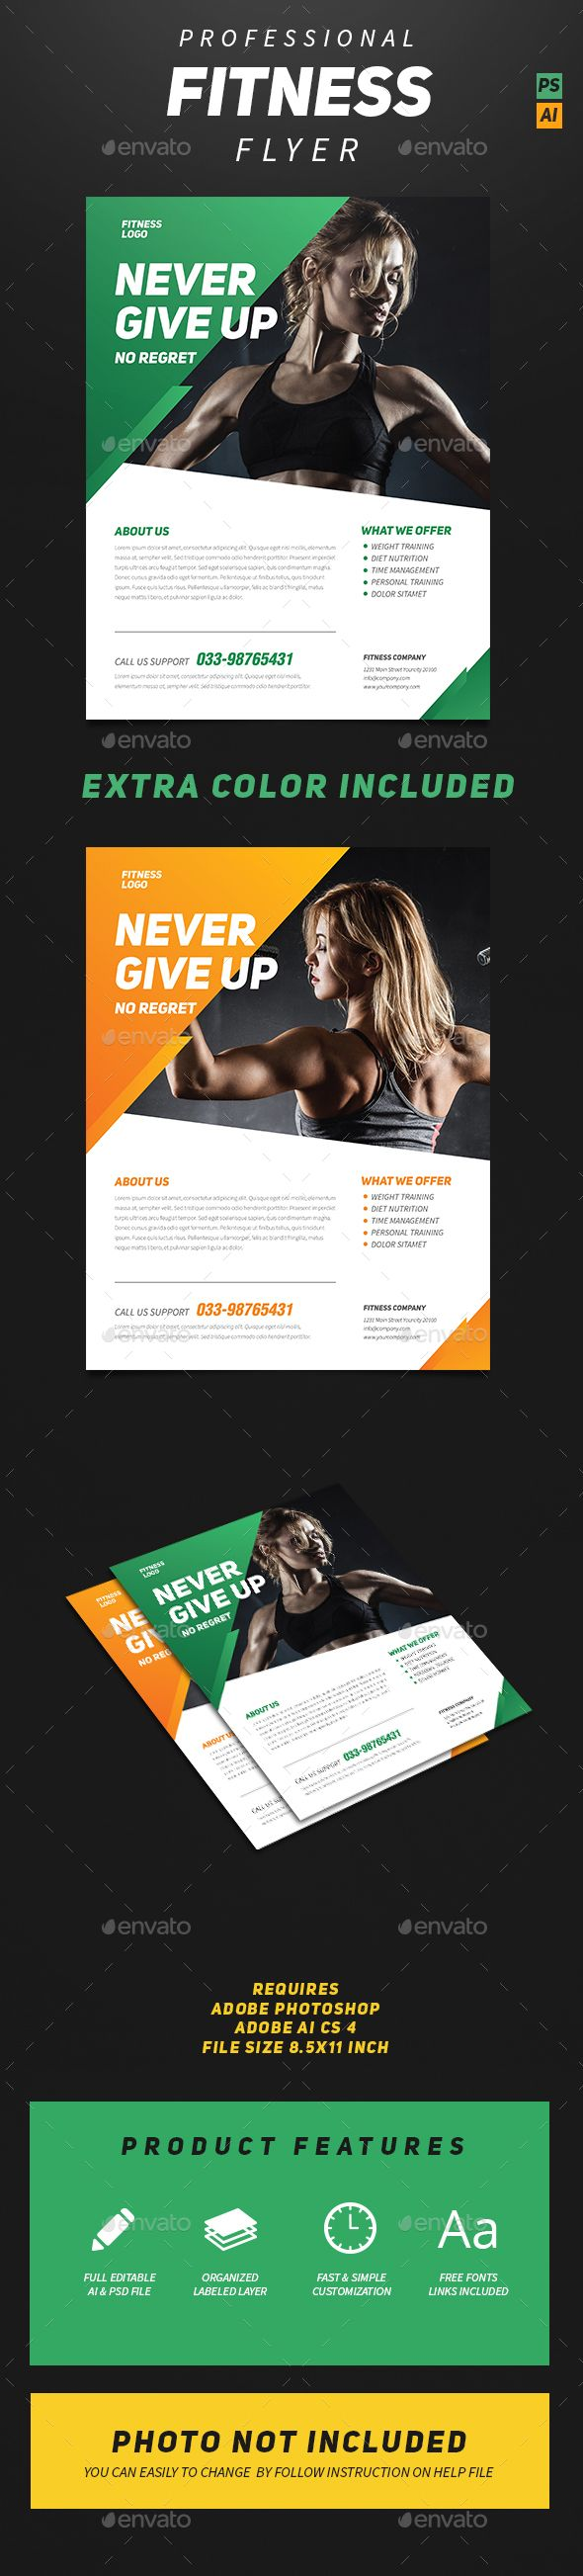 Professional Fitness Flyer - Corporate Flyers